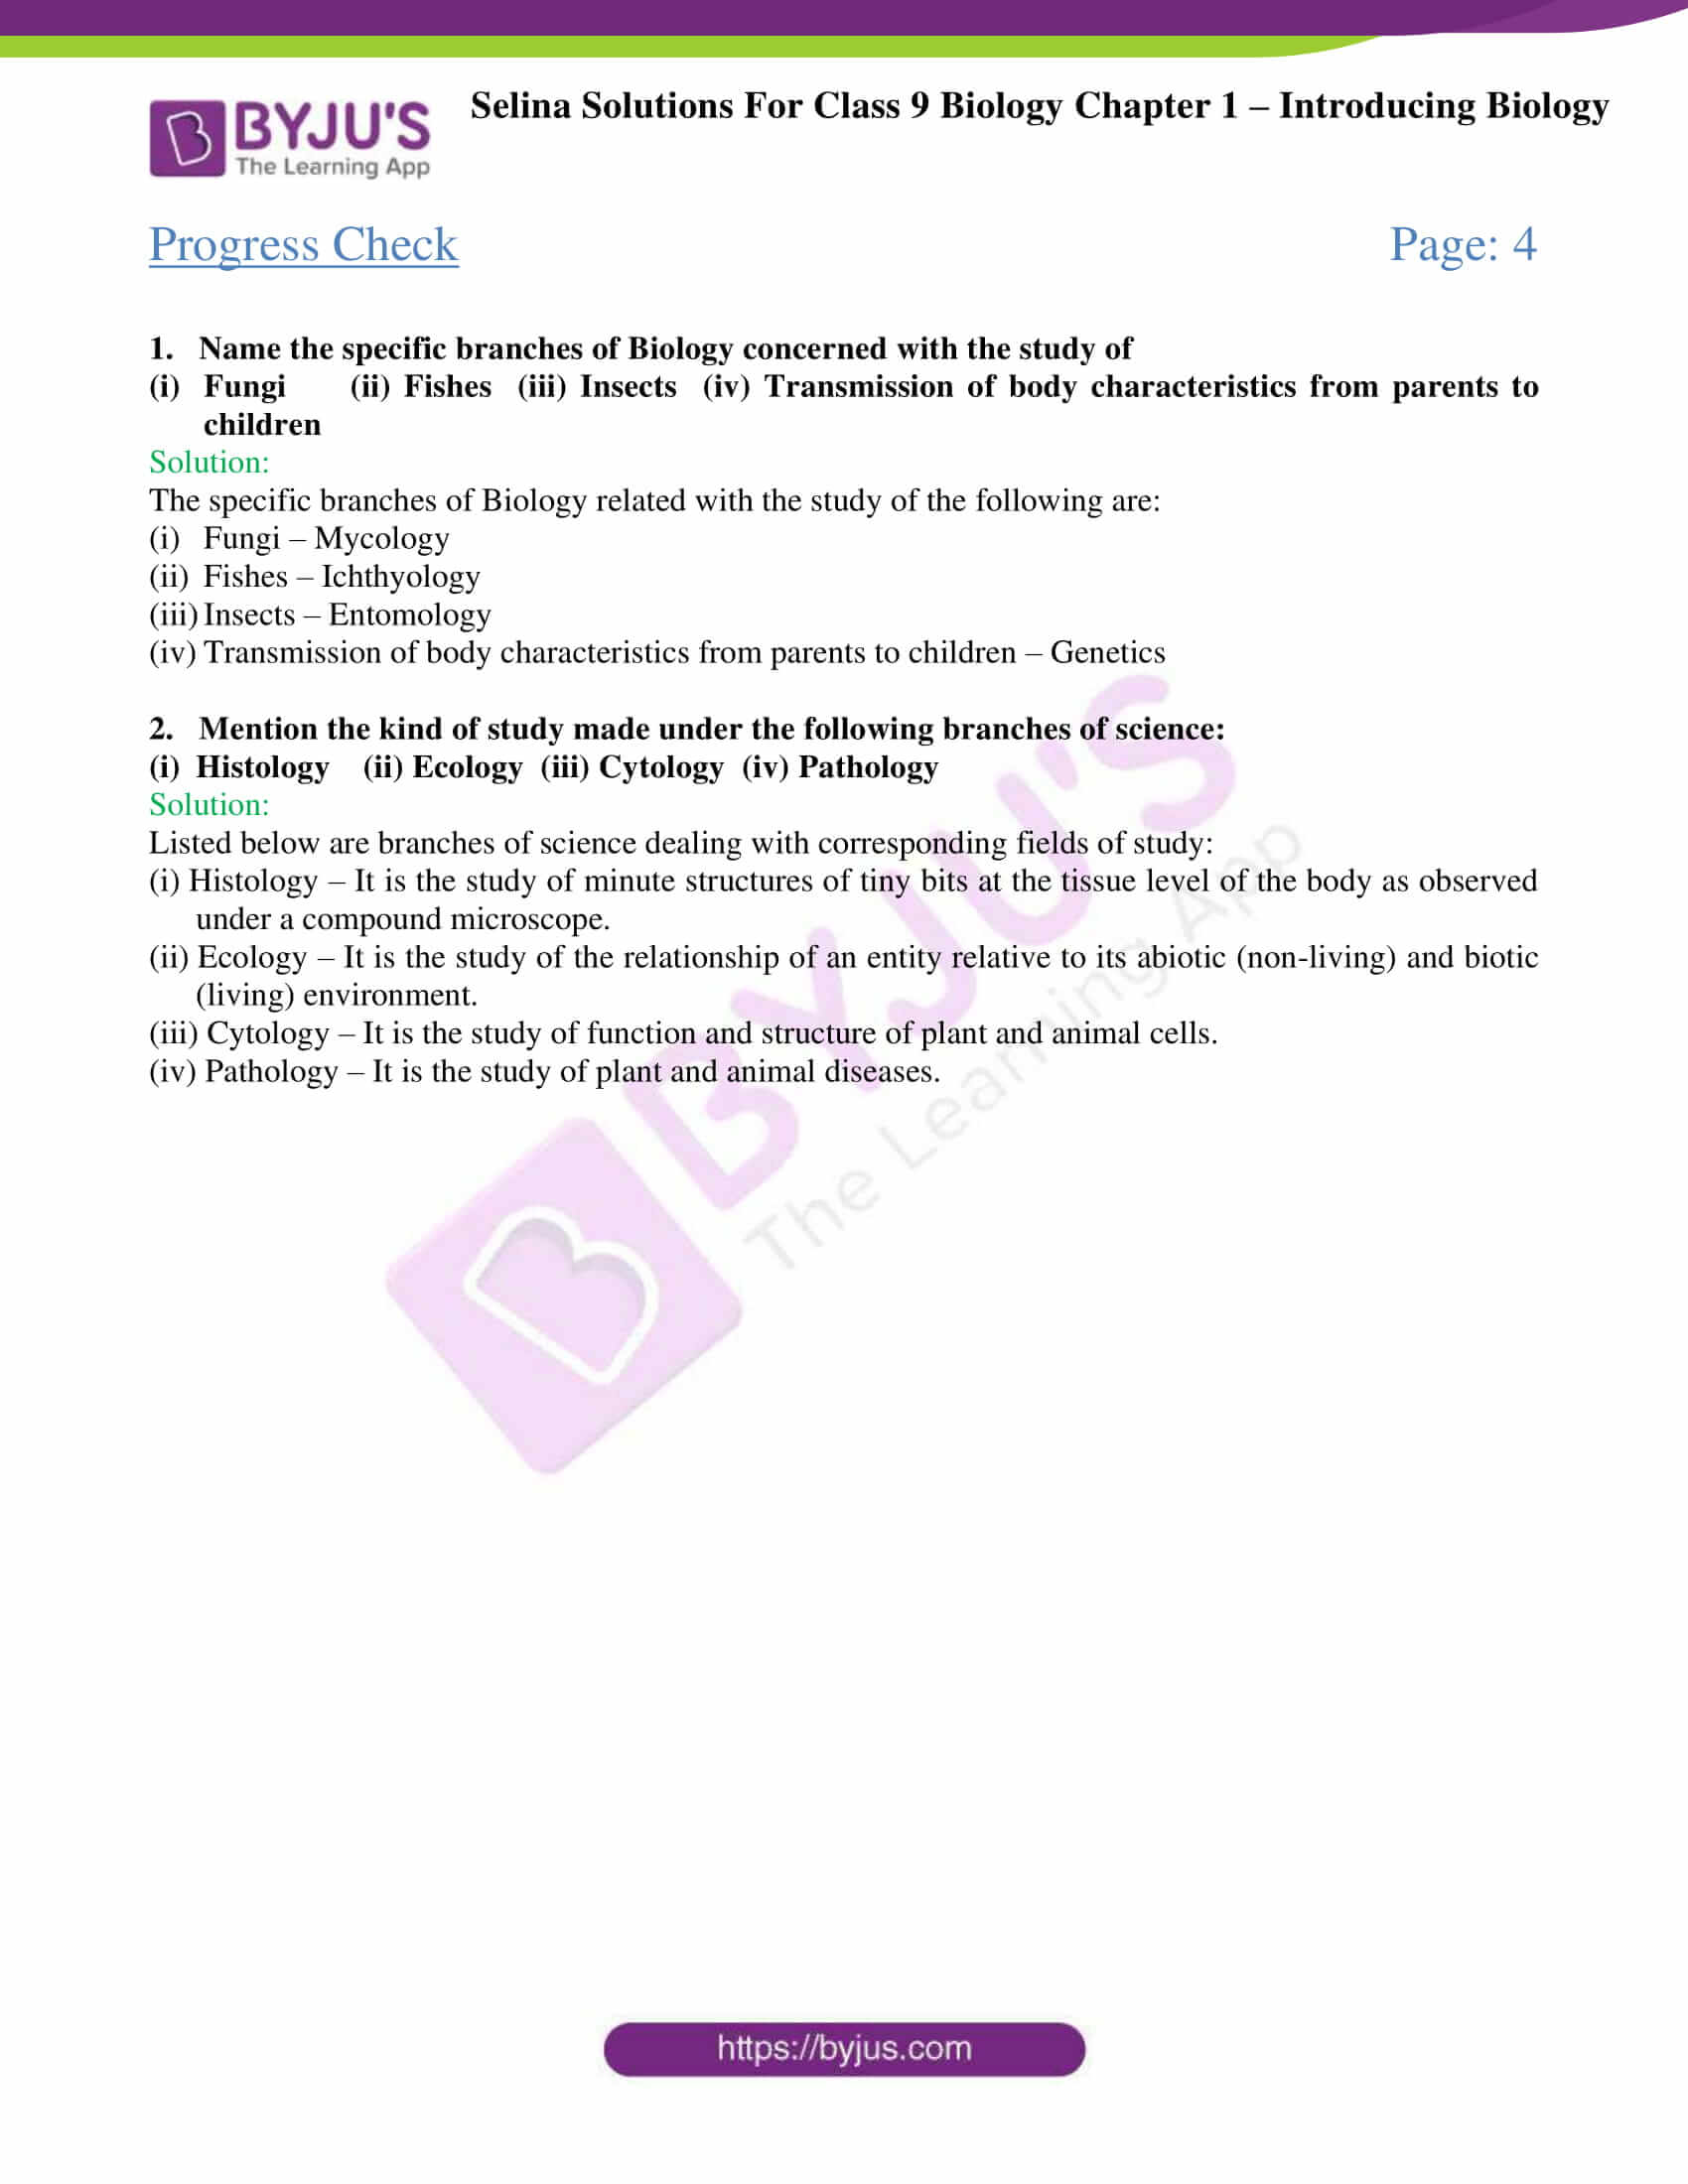 Selina Solutions For Class 9 Biology Chapter 1 Introducing Biology part 1